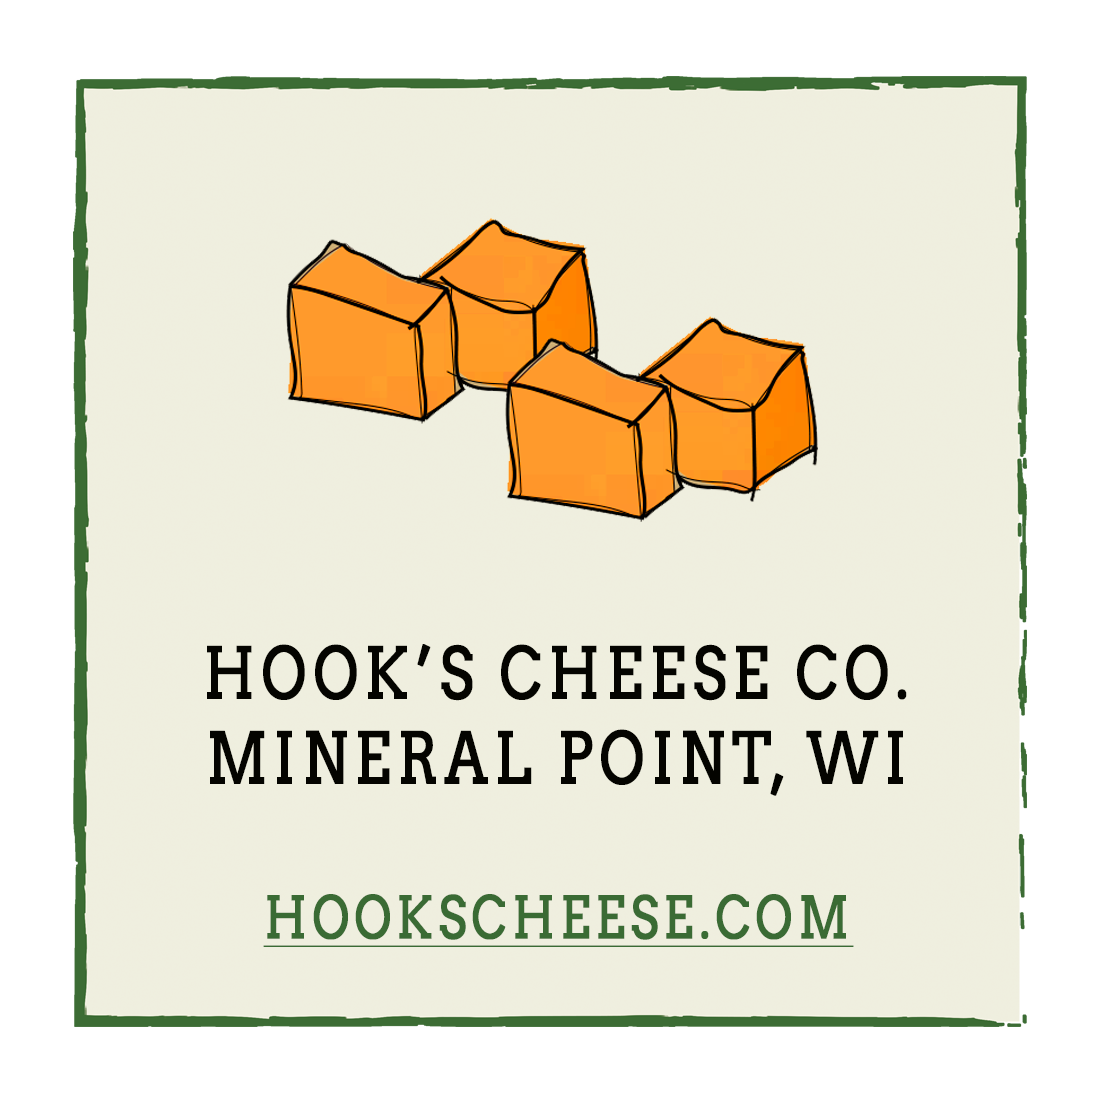 Hook's Cheese Co